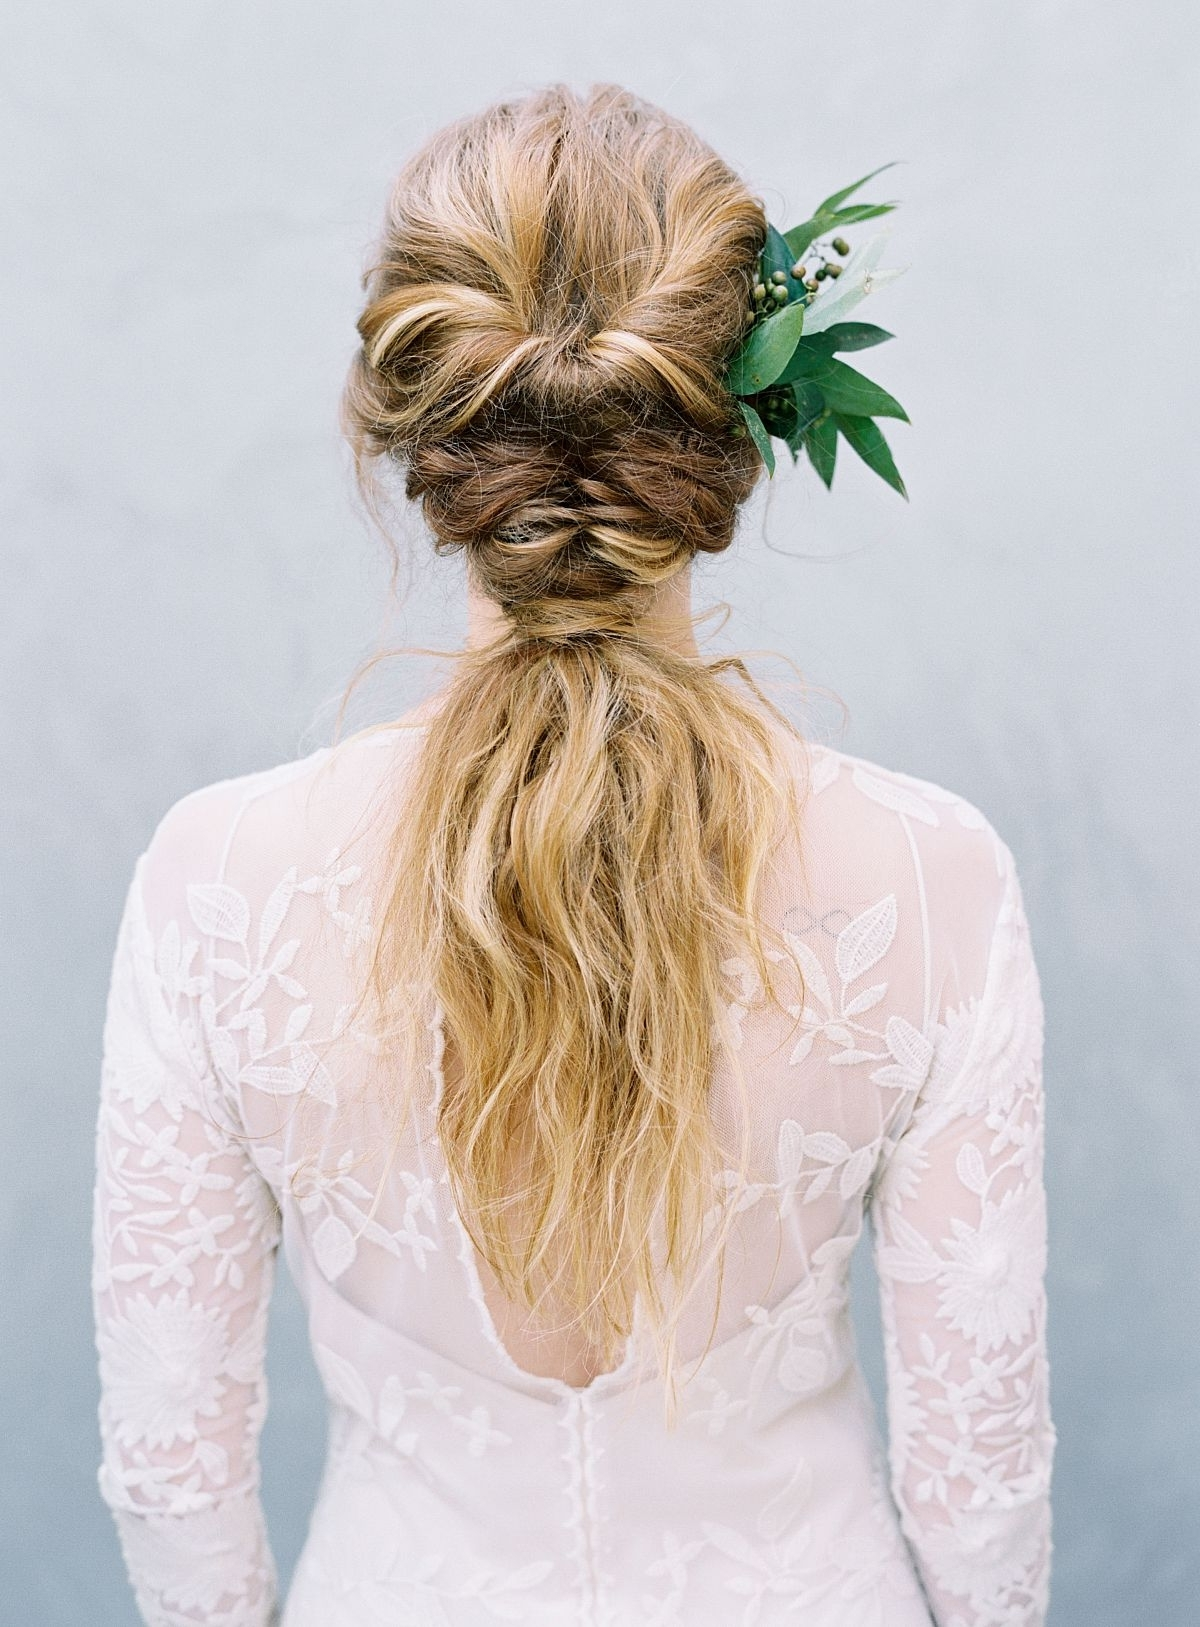 Weddingsonline Within Fashionable Relaxed Wedding Hairstyles (View 15 of 15)